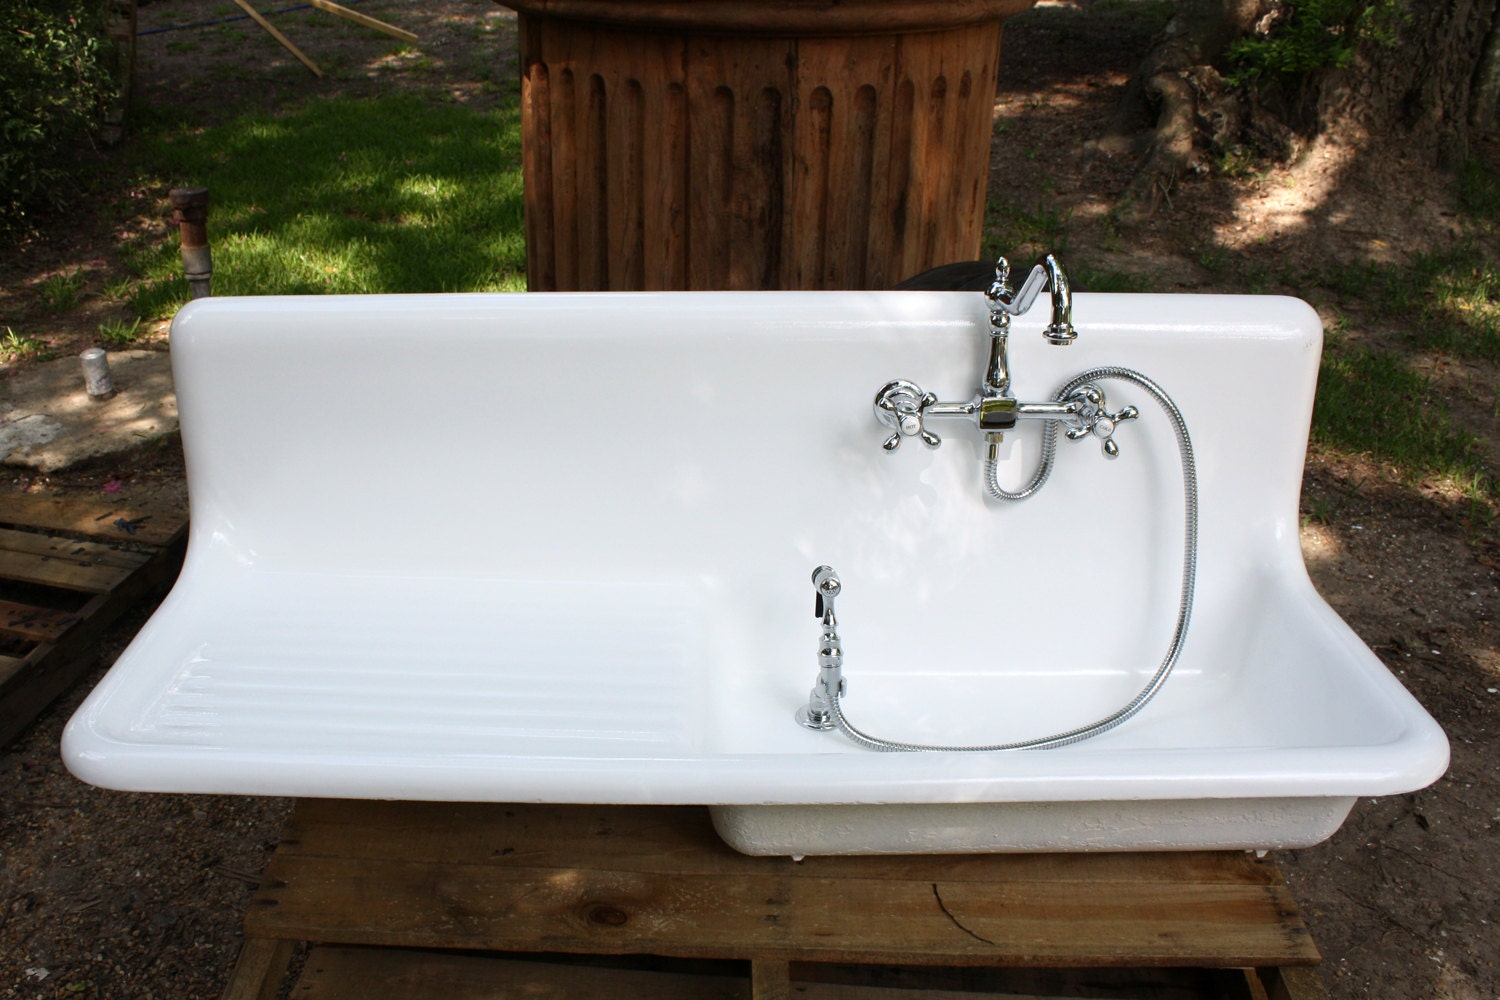 1927 Am Standard Cast Iron Kitchen Farm Sink 54 X 20 By